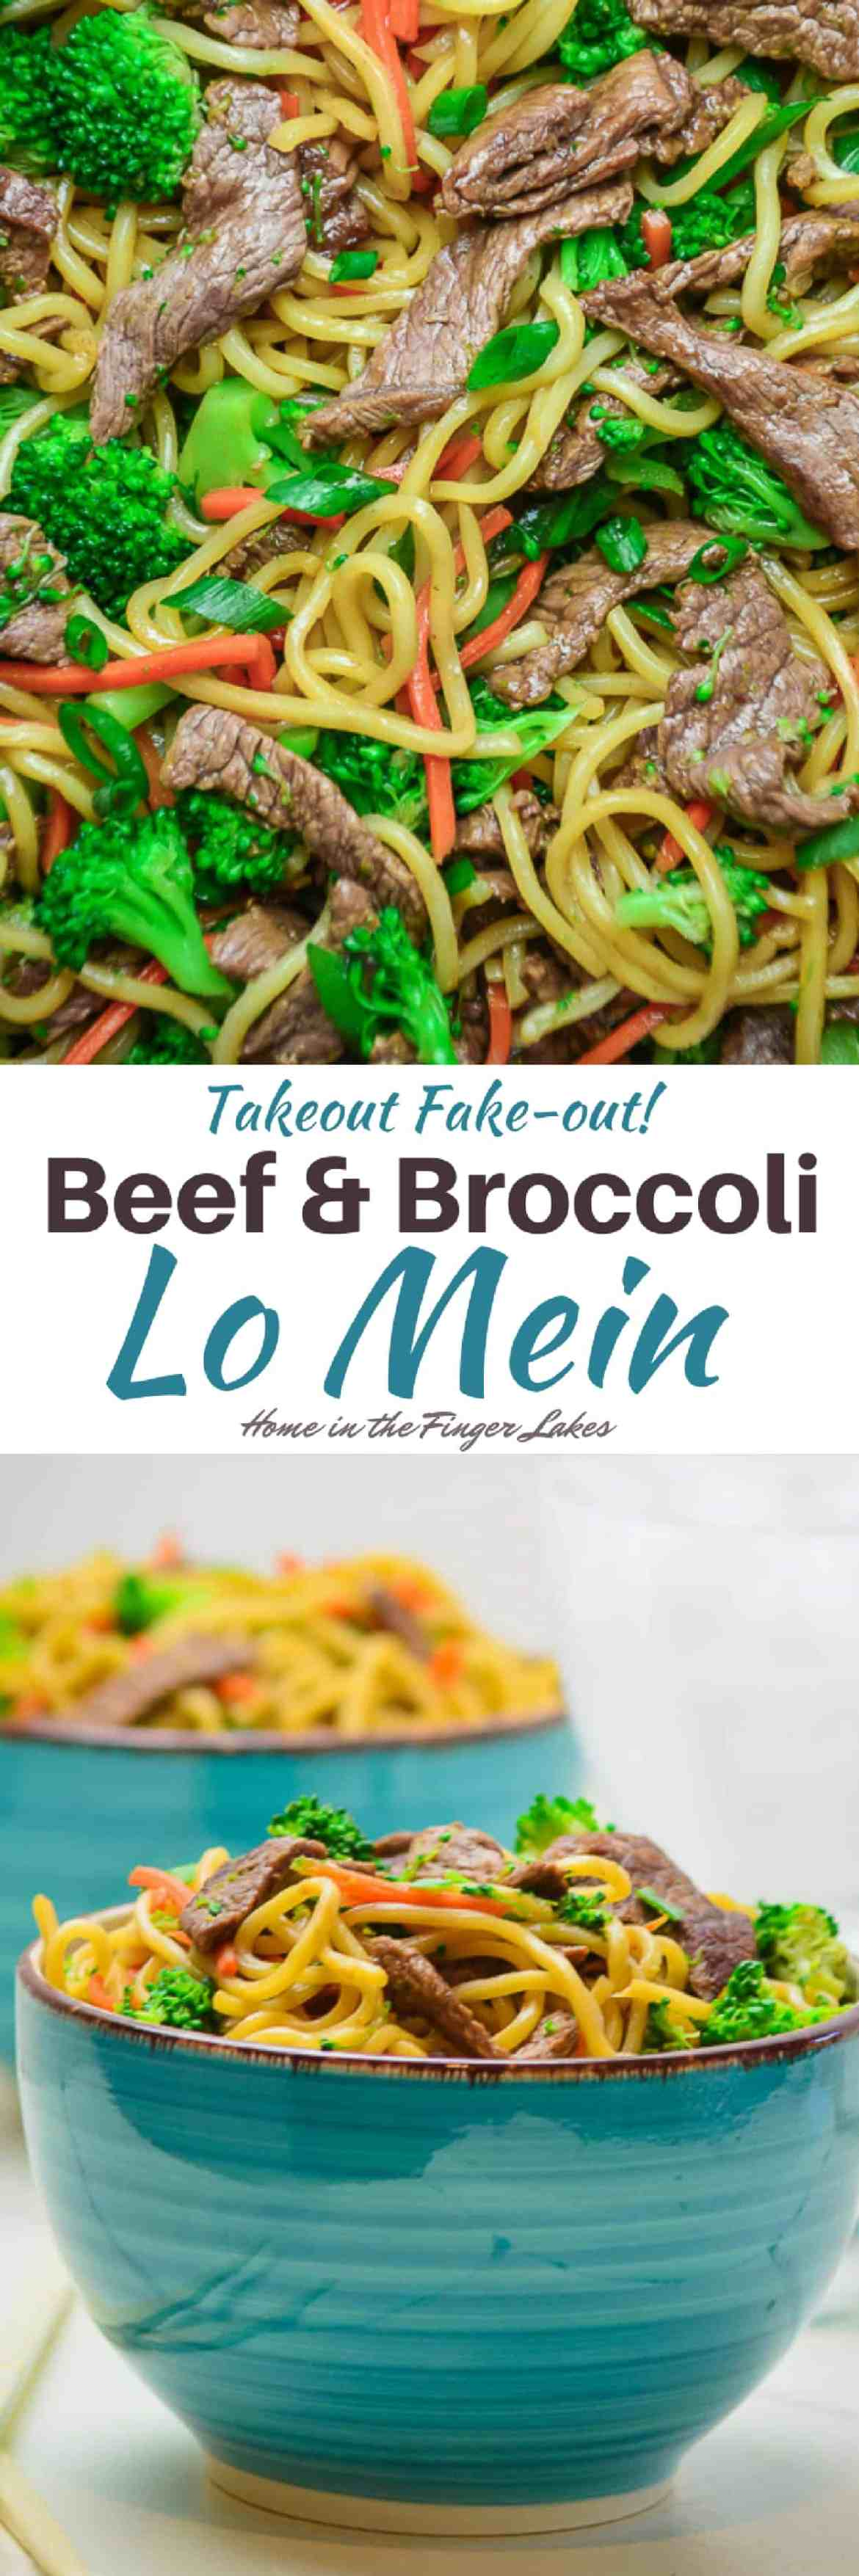 Dinner's on the table in 20 Minutes with this Beef and Broccoli Lo Mein. Tender Beef strips tossed with veggies and lo mein noodles in a flavorful sauce is the perfect weeknight meal.